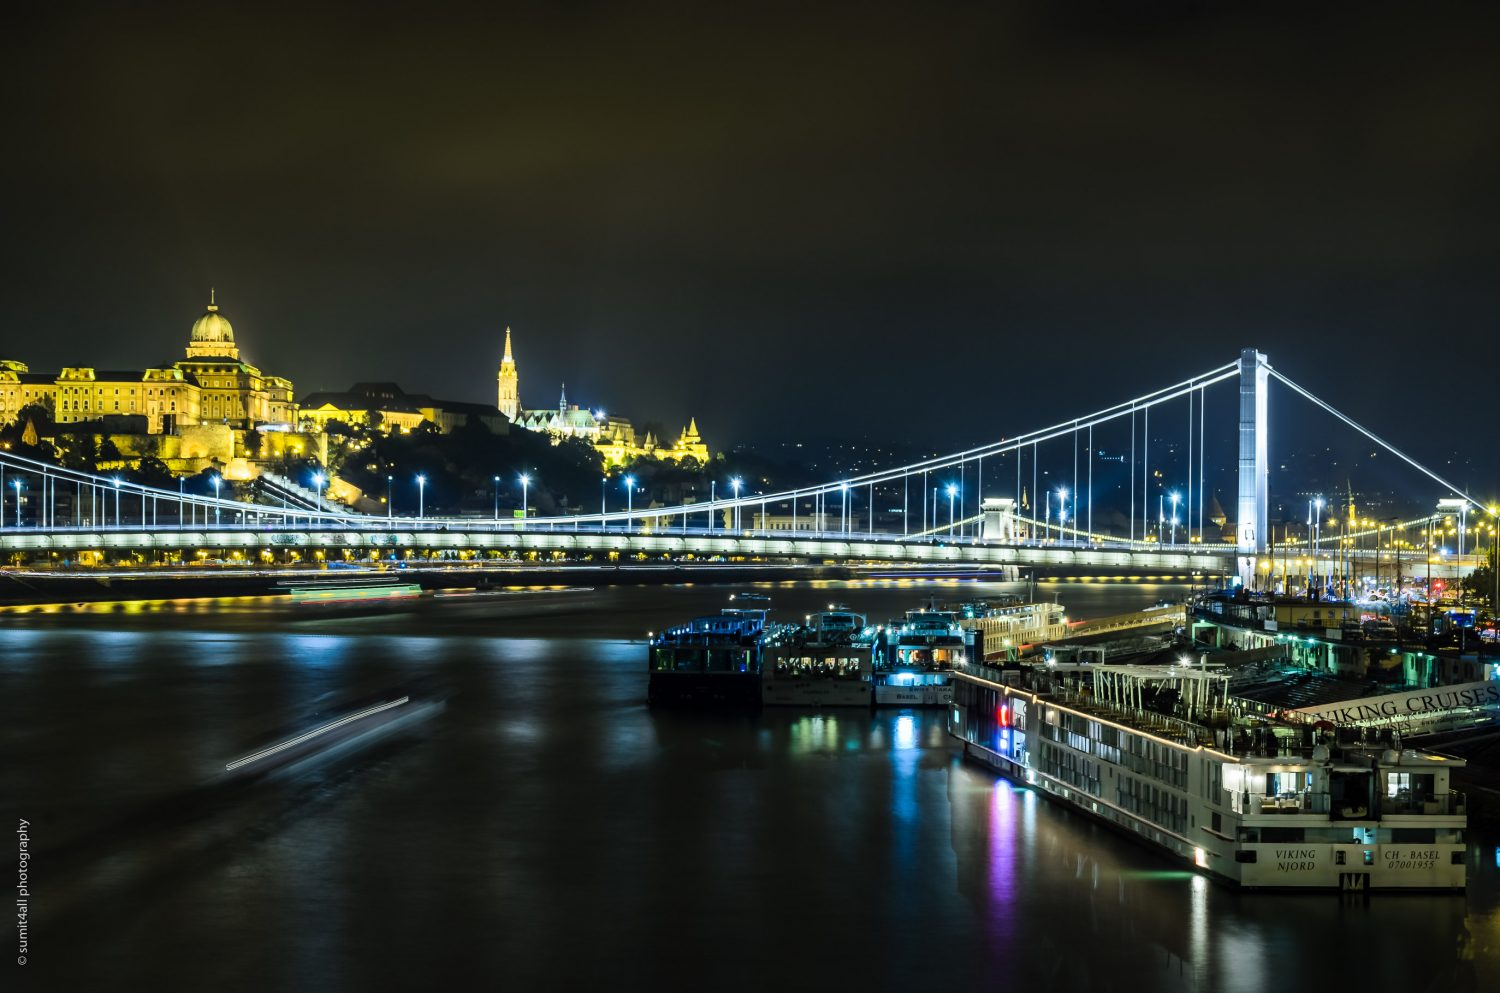 The Buda Castle in the background lit in yellow, and the Elisabeth Bridge lit in white/blue light in the foreground.